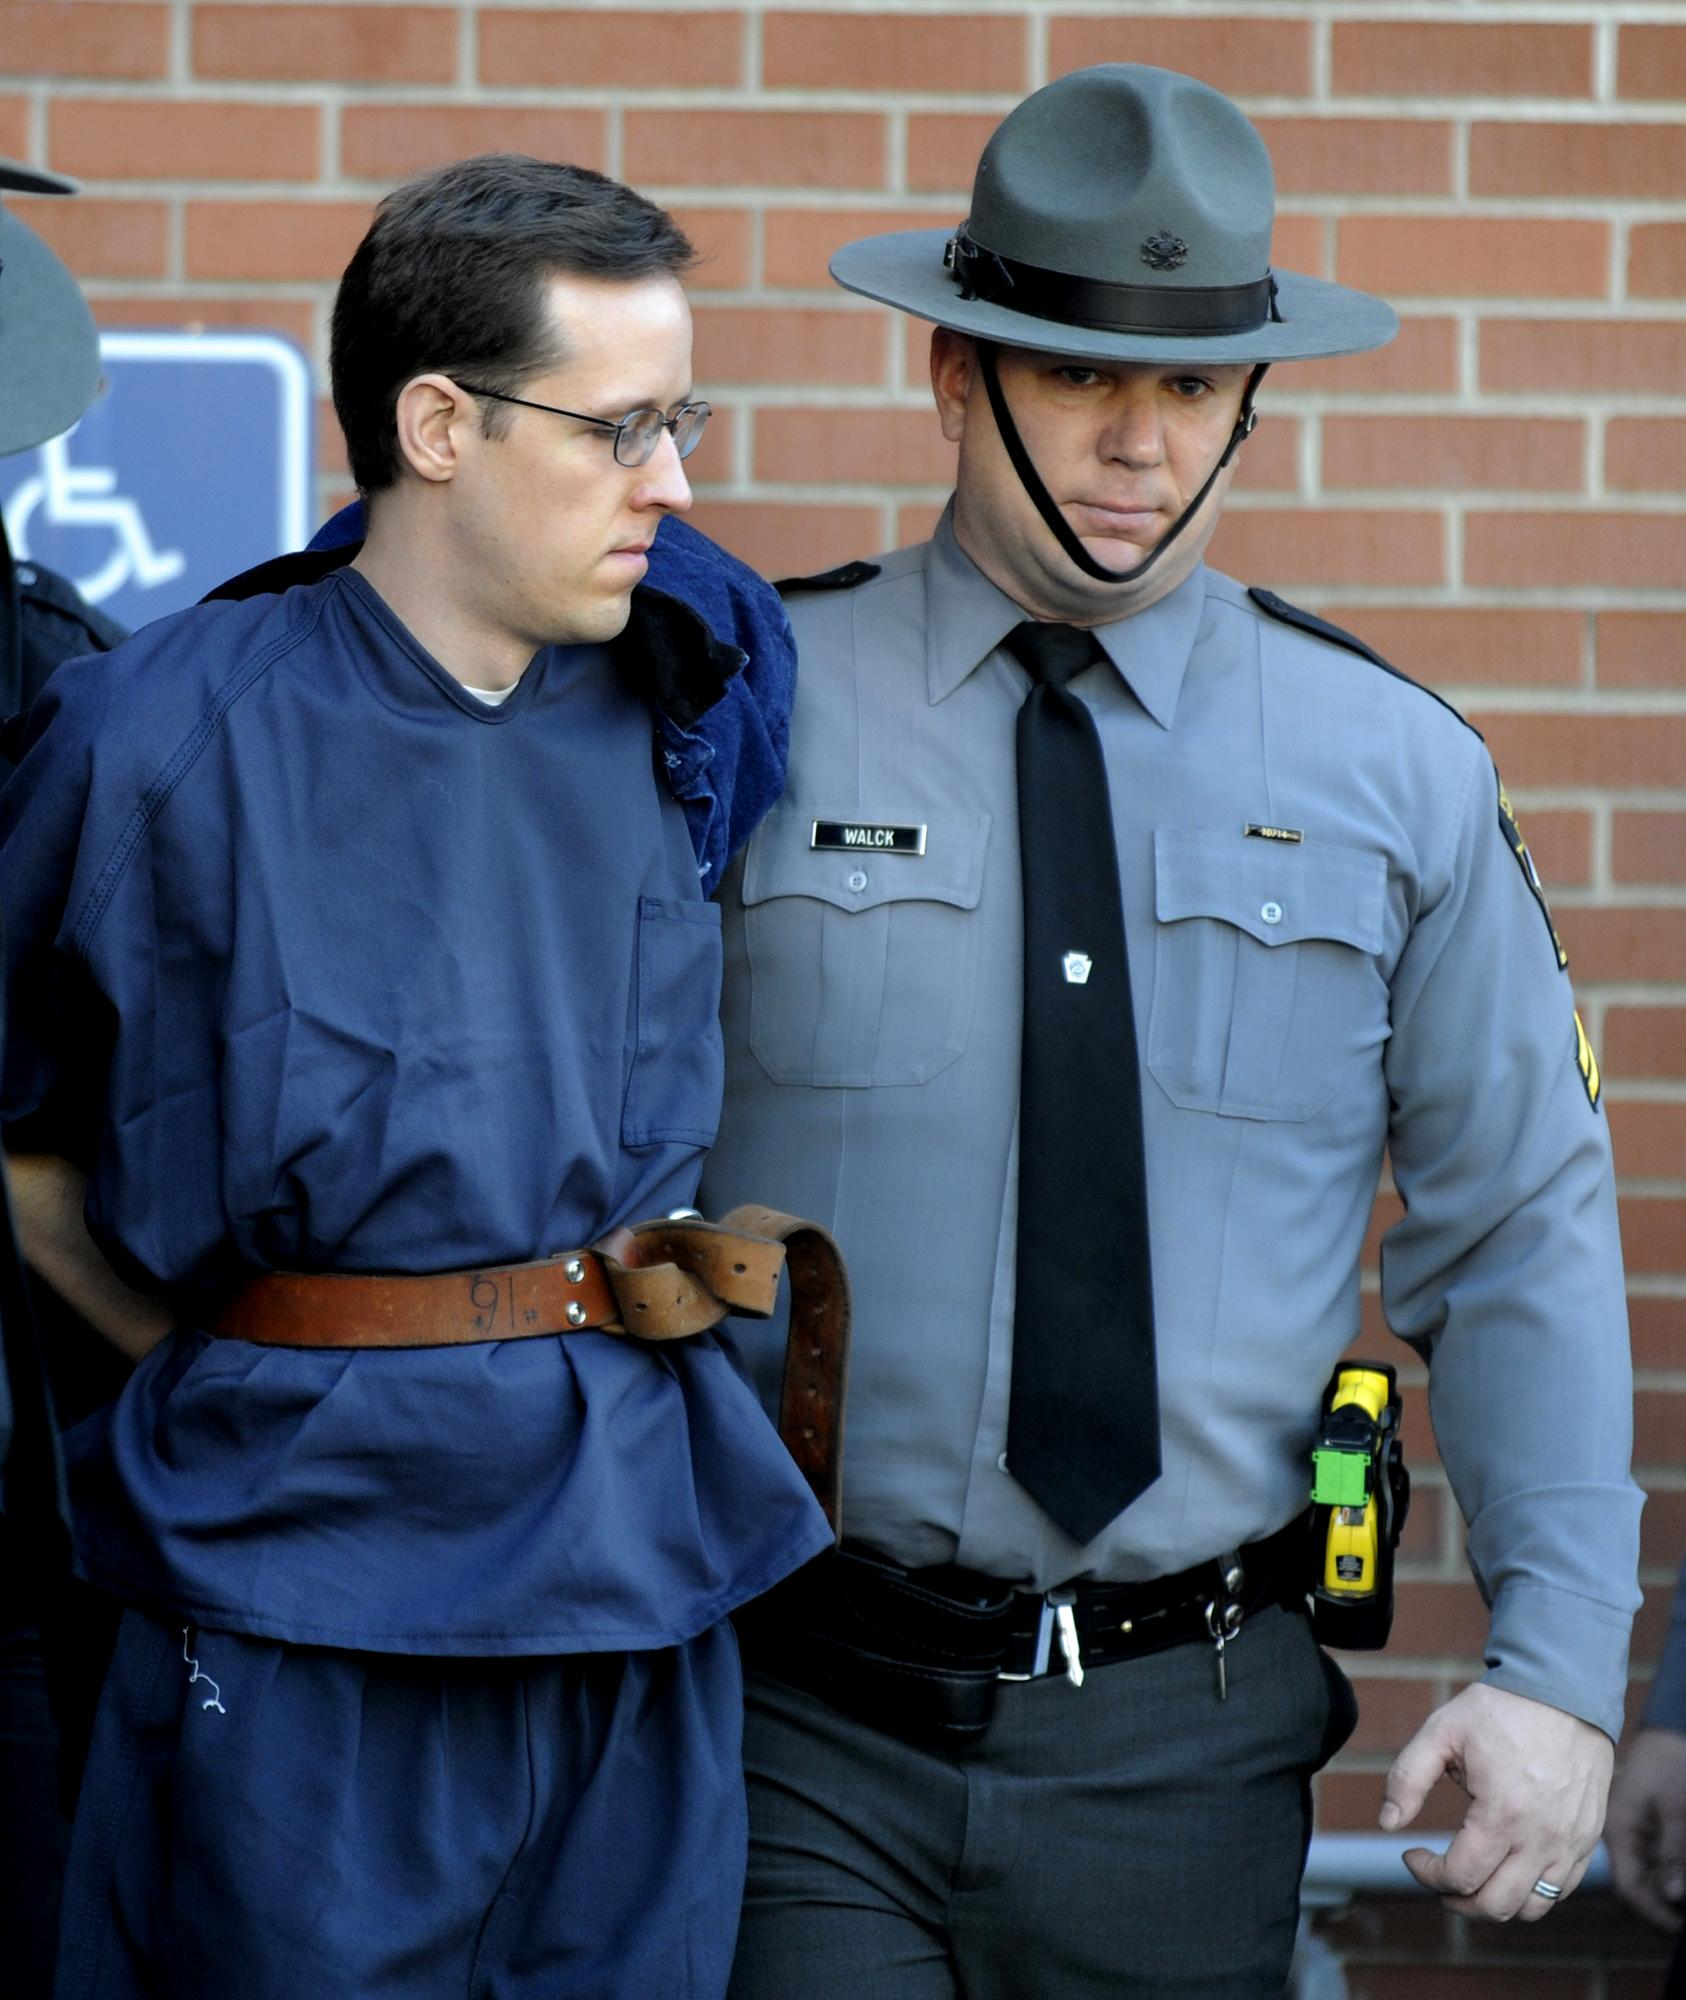 Survivalist pleads not guilty in trooper's ambush killing